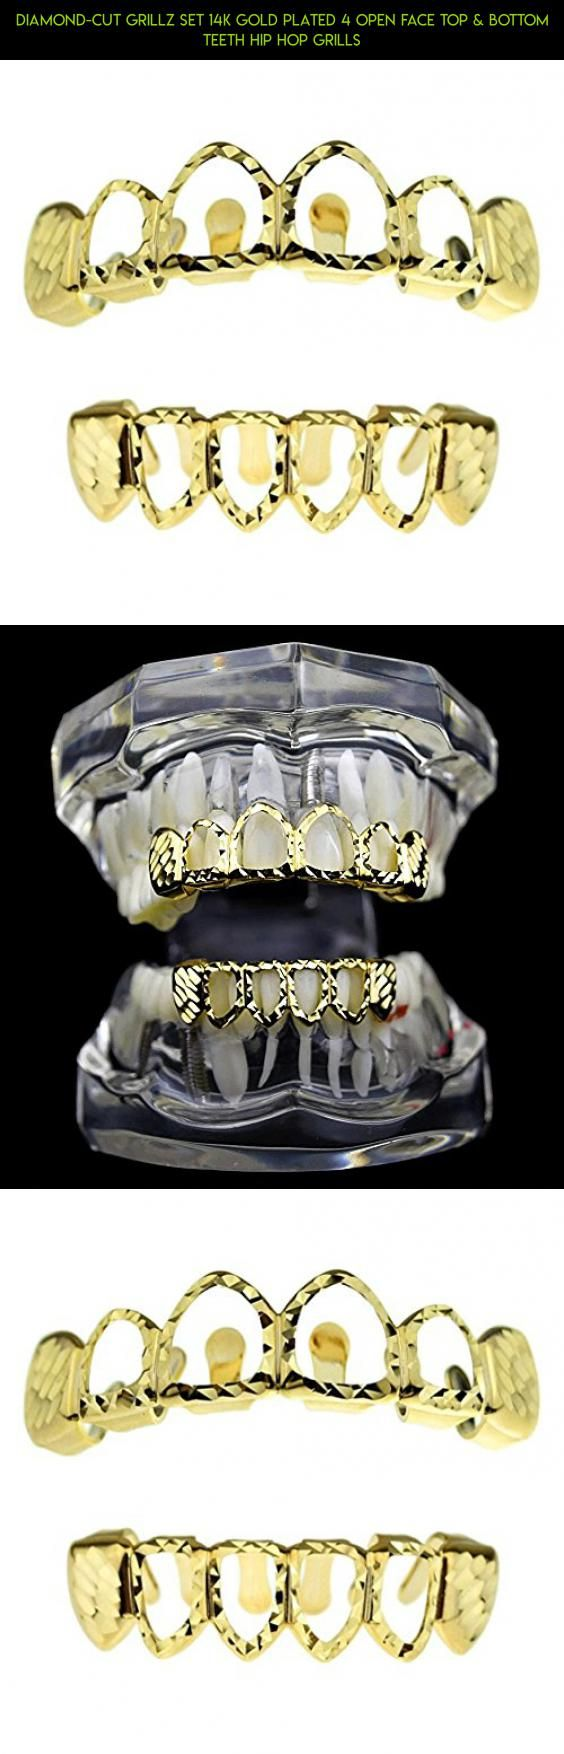 Diamond-Cut Grillz Set 14K Gold Plated 4 Open Face Top & Bottom Teeth Hip Hop Grills #racing #tech #diamond #plans #gadgets #camera #drone #grills #kit #fpv #teeth #technology #products #parts #shopping